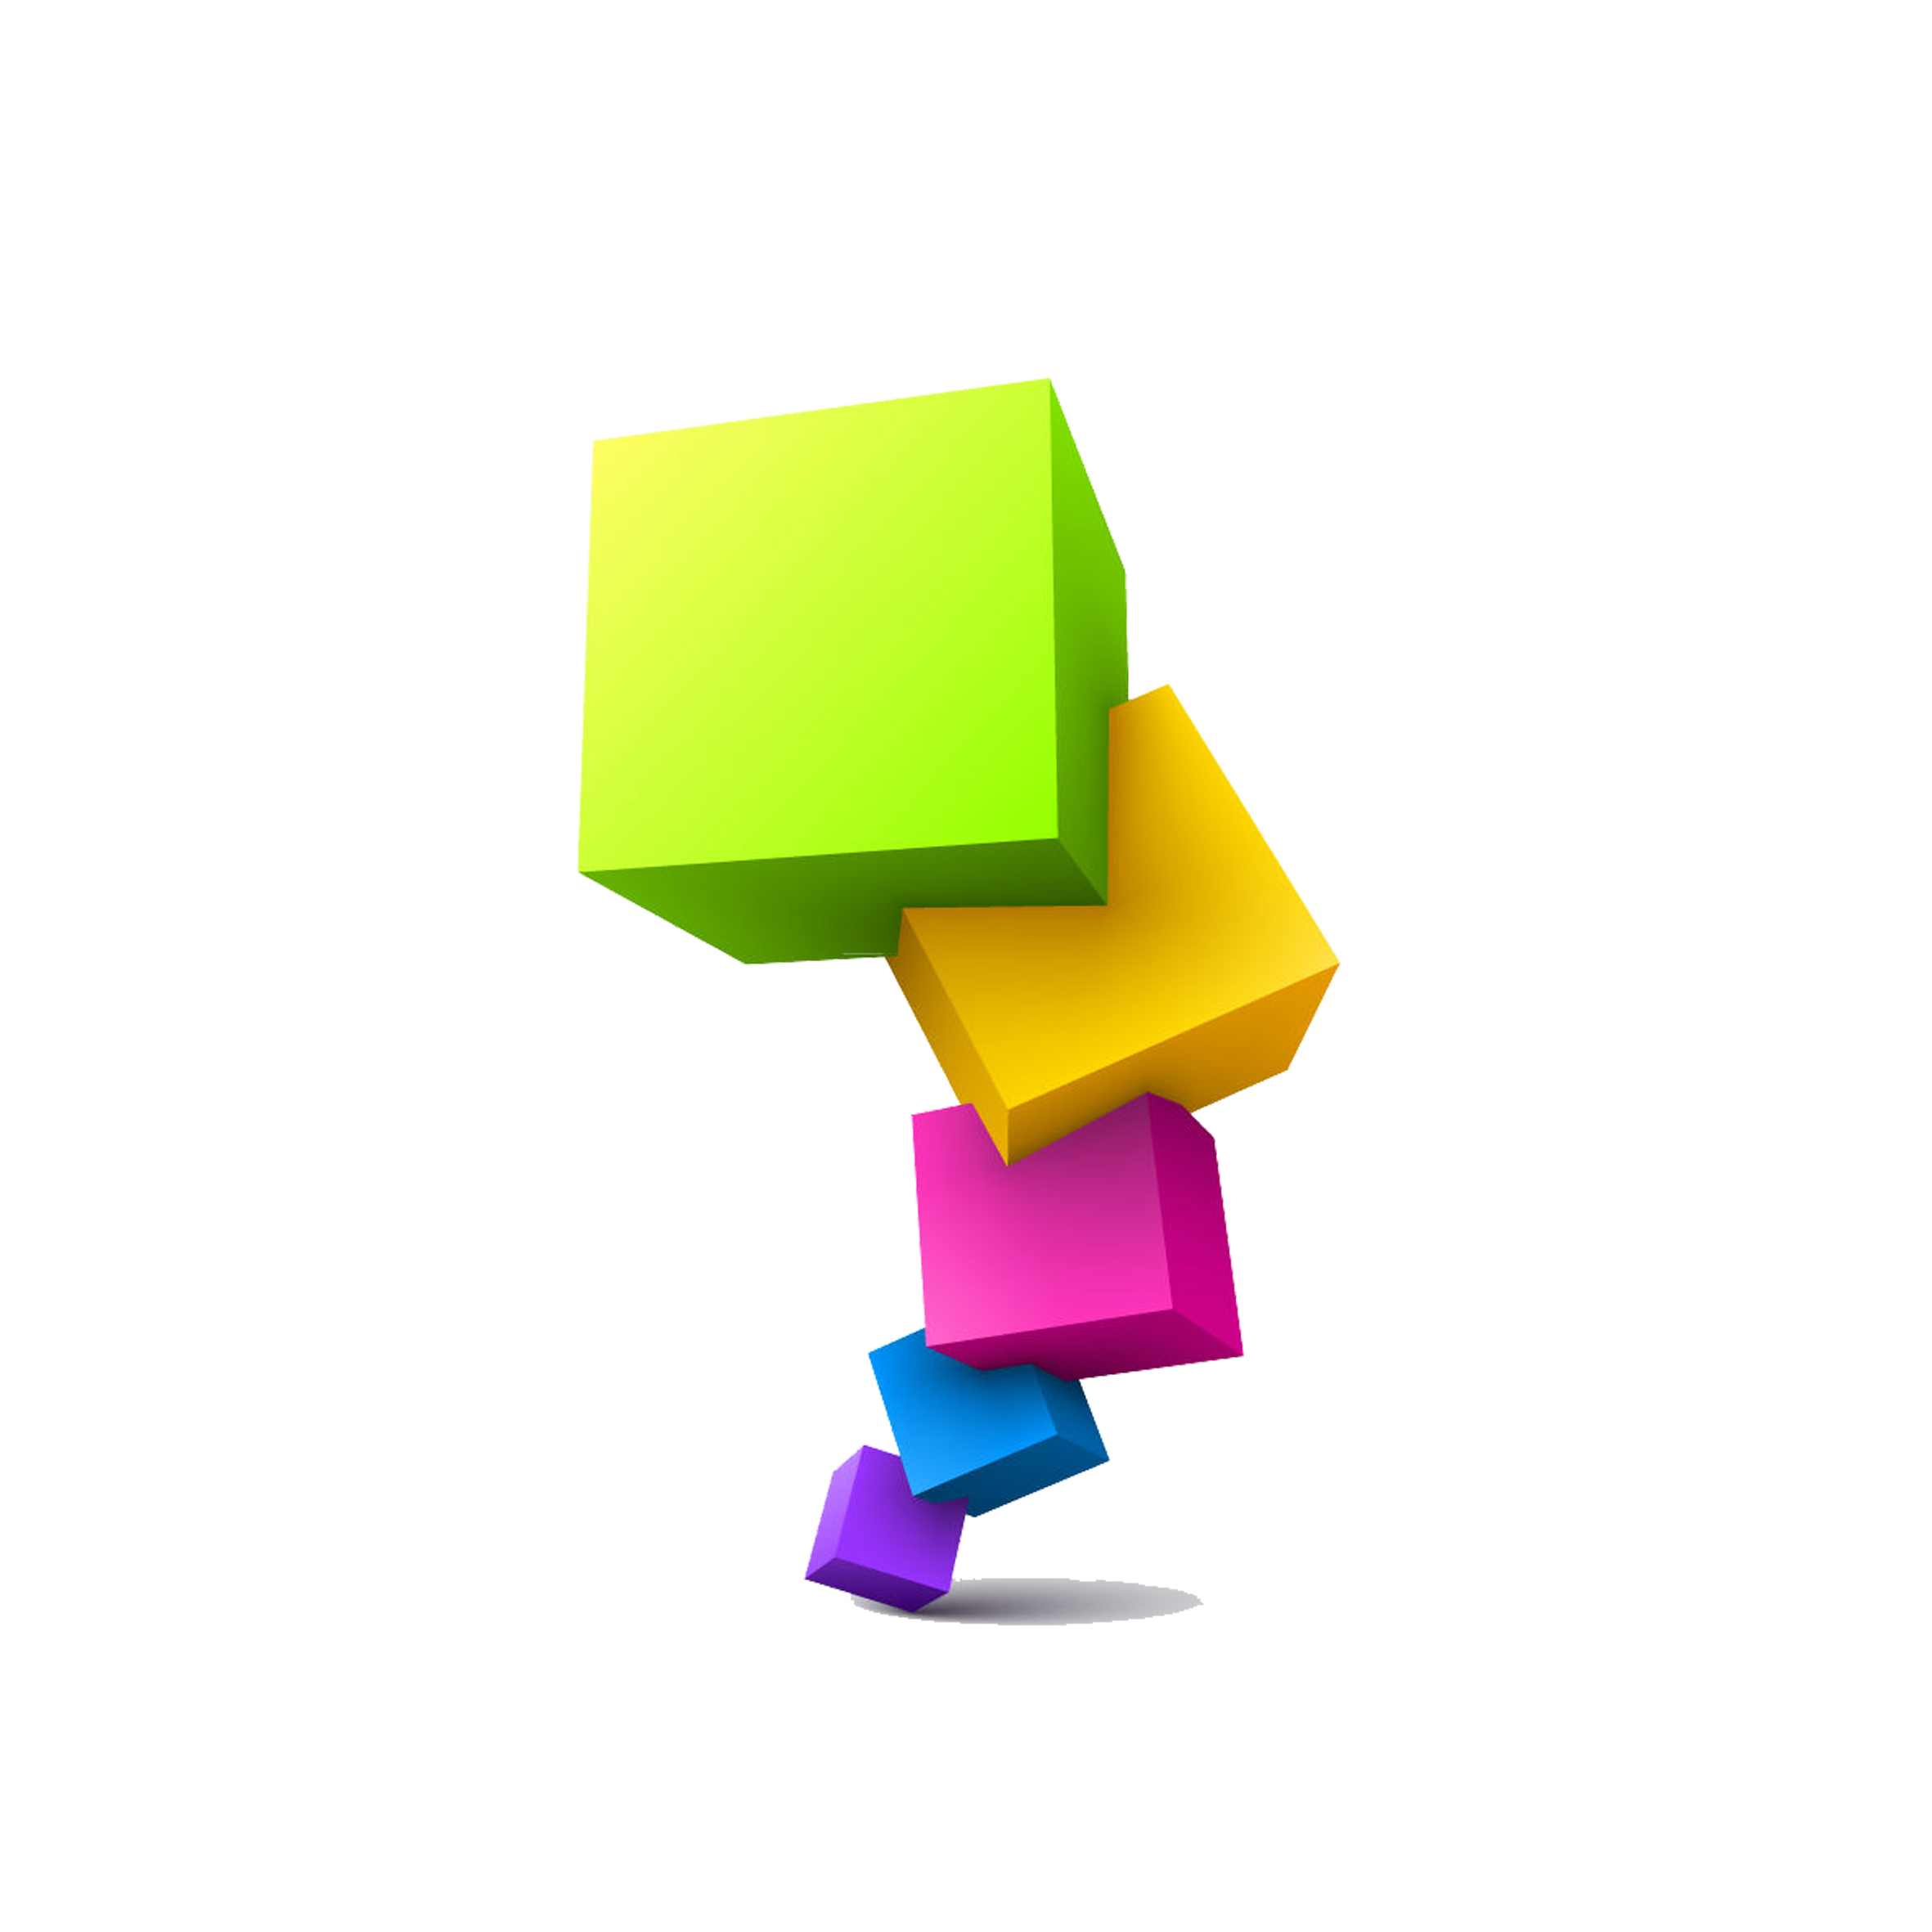 Geometry clipart color shape. Cube transprent png free